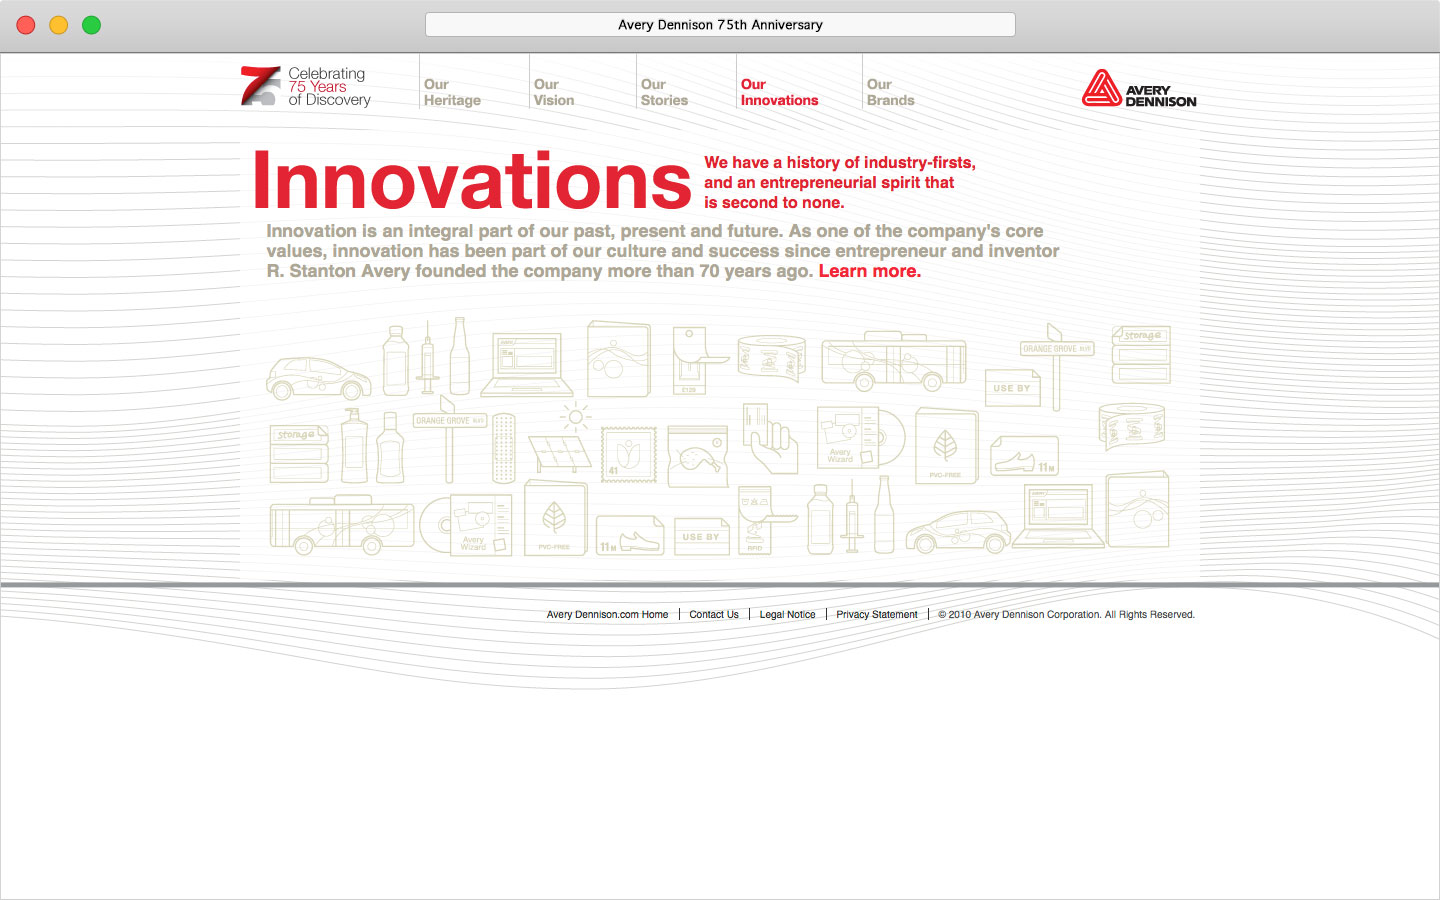 Avery Dennison 75th anniversary microsite Our Innovations